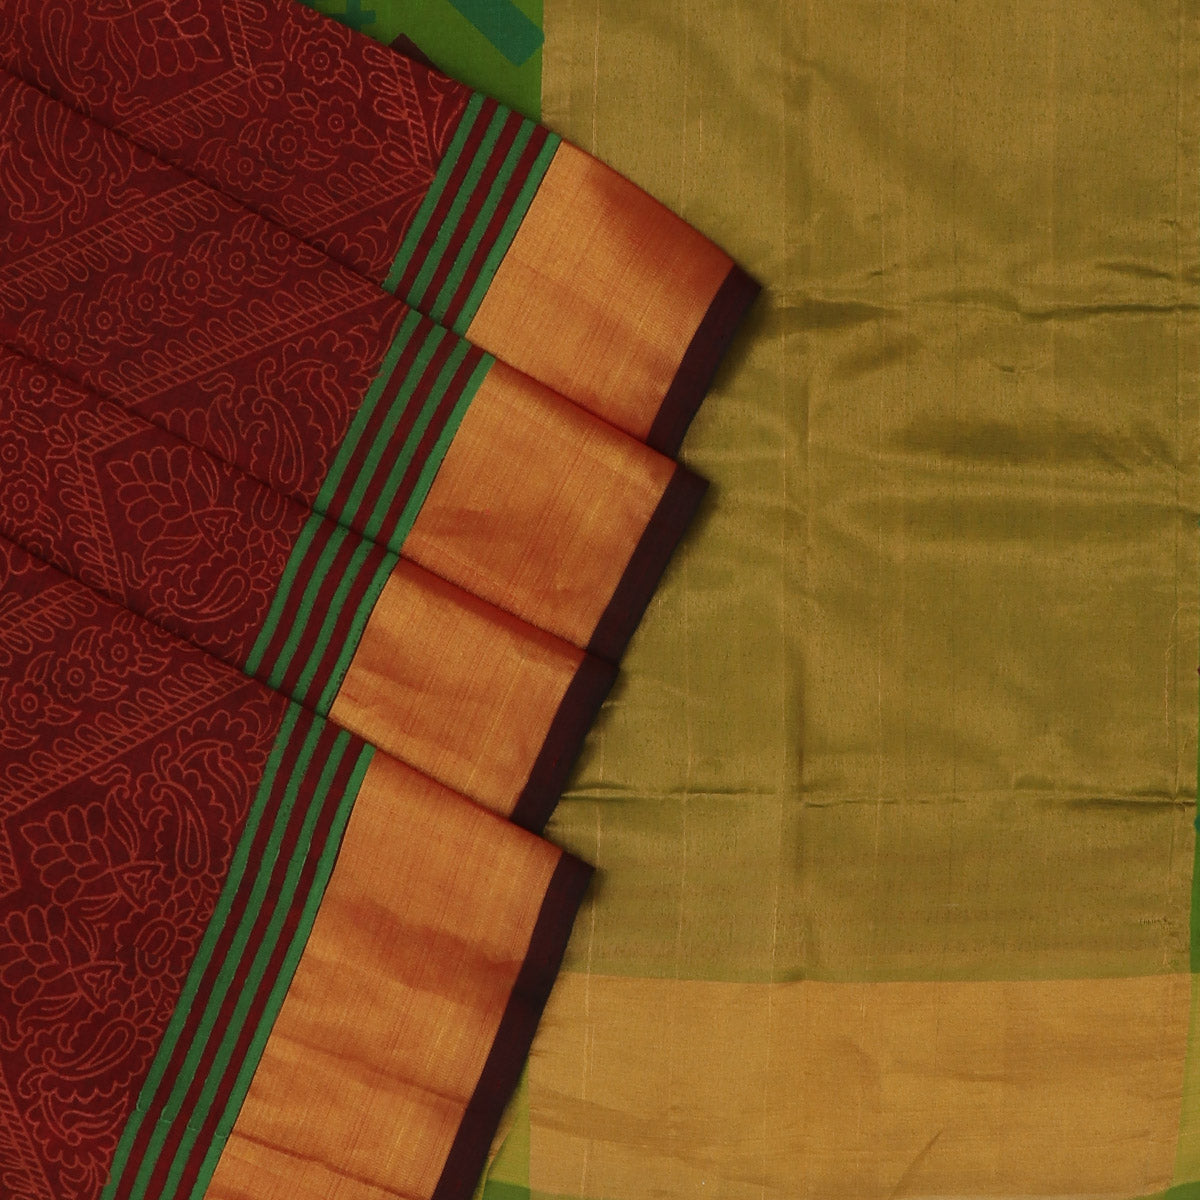 Printed Silk Cotton Saree - Maroon and Green with Bavanji zari border